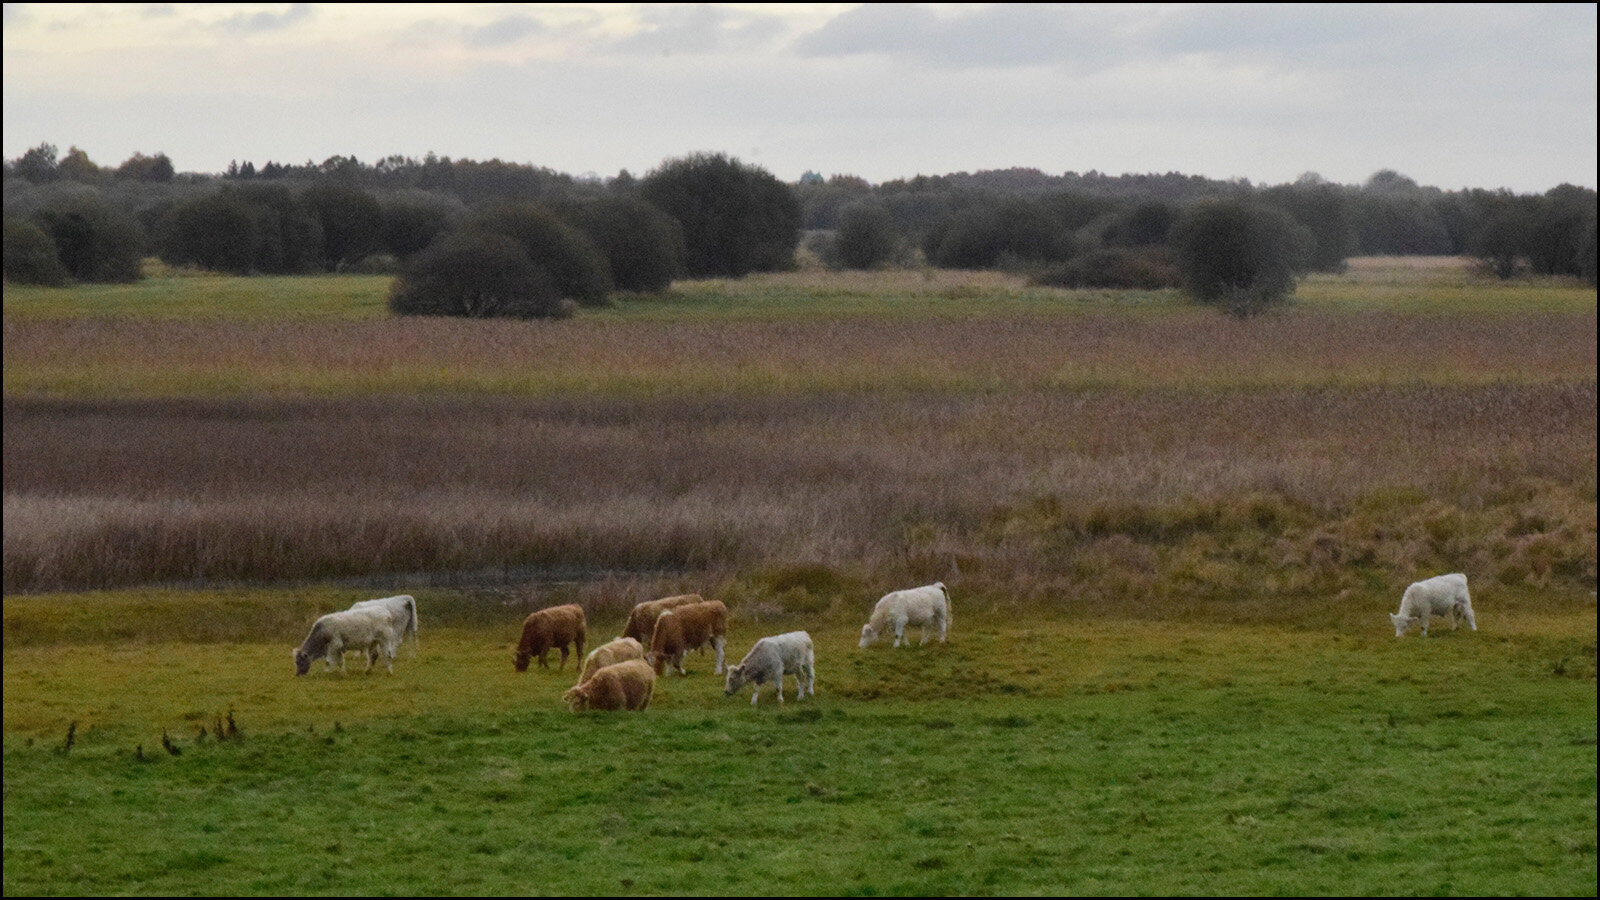 Clanmacnoise - where hundreds of years of turmoil now allow for peaceful pastures (c) mark somple 2019